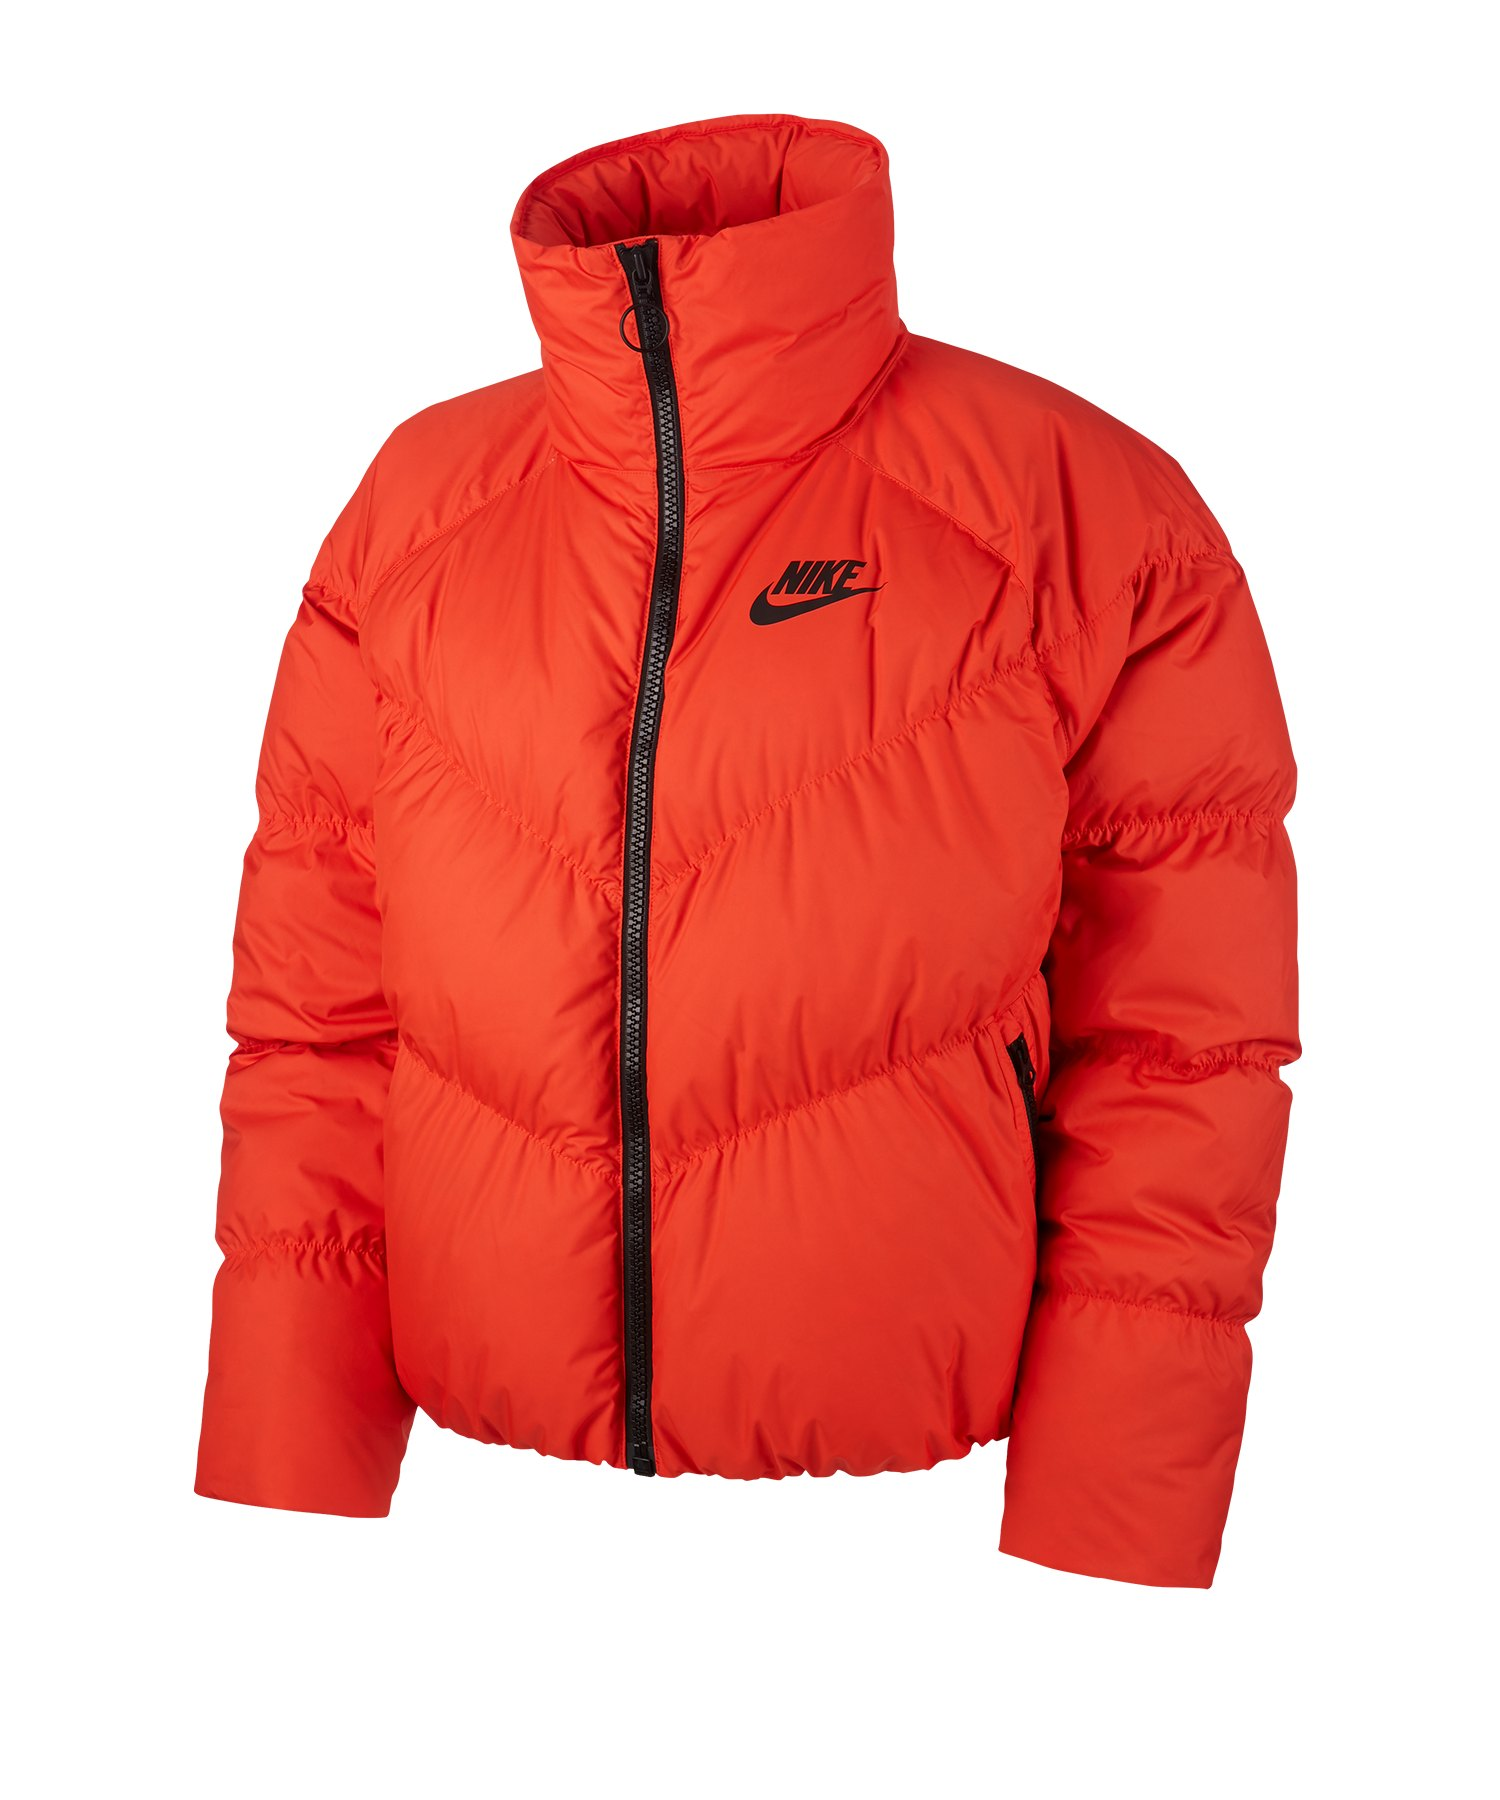 Nike Daunenjacke Damen Orange F891 - orange